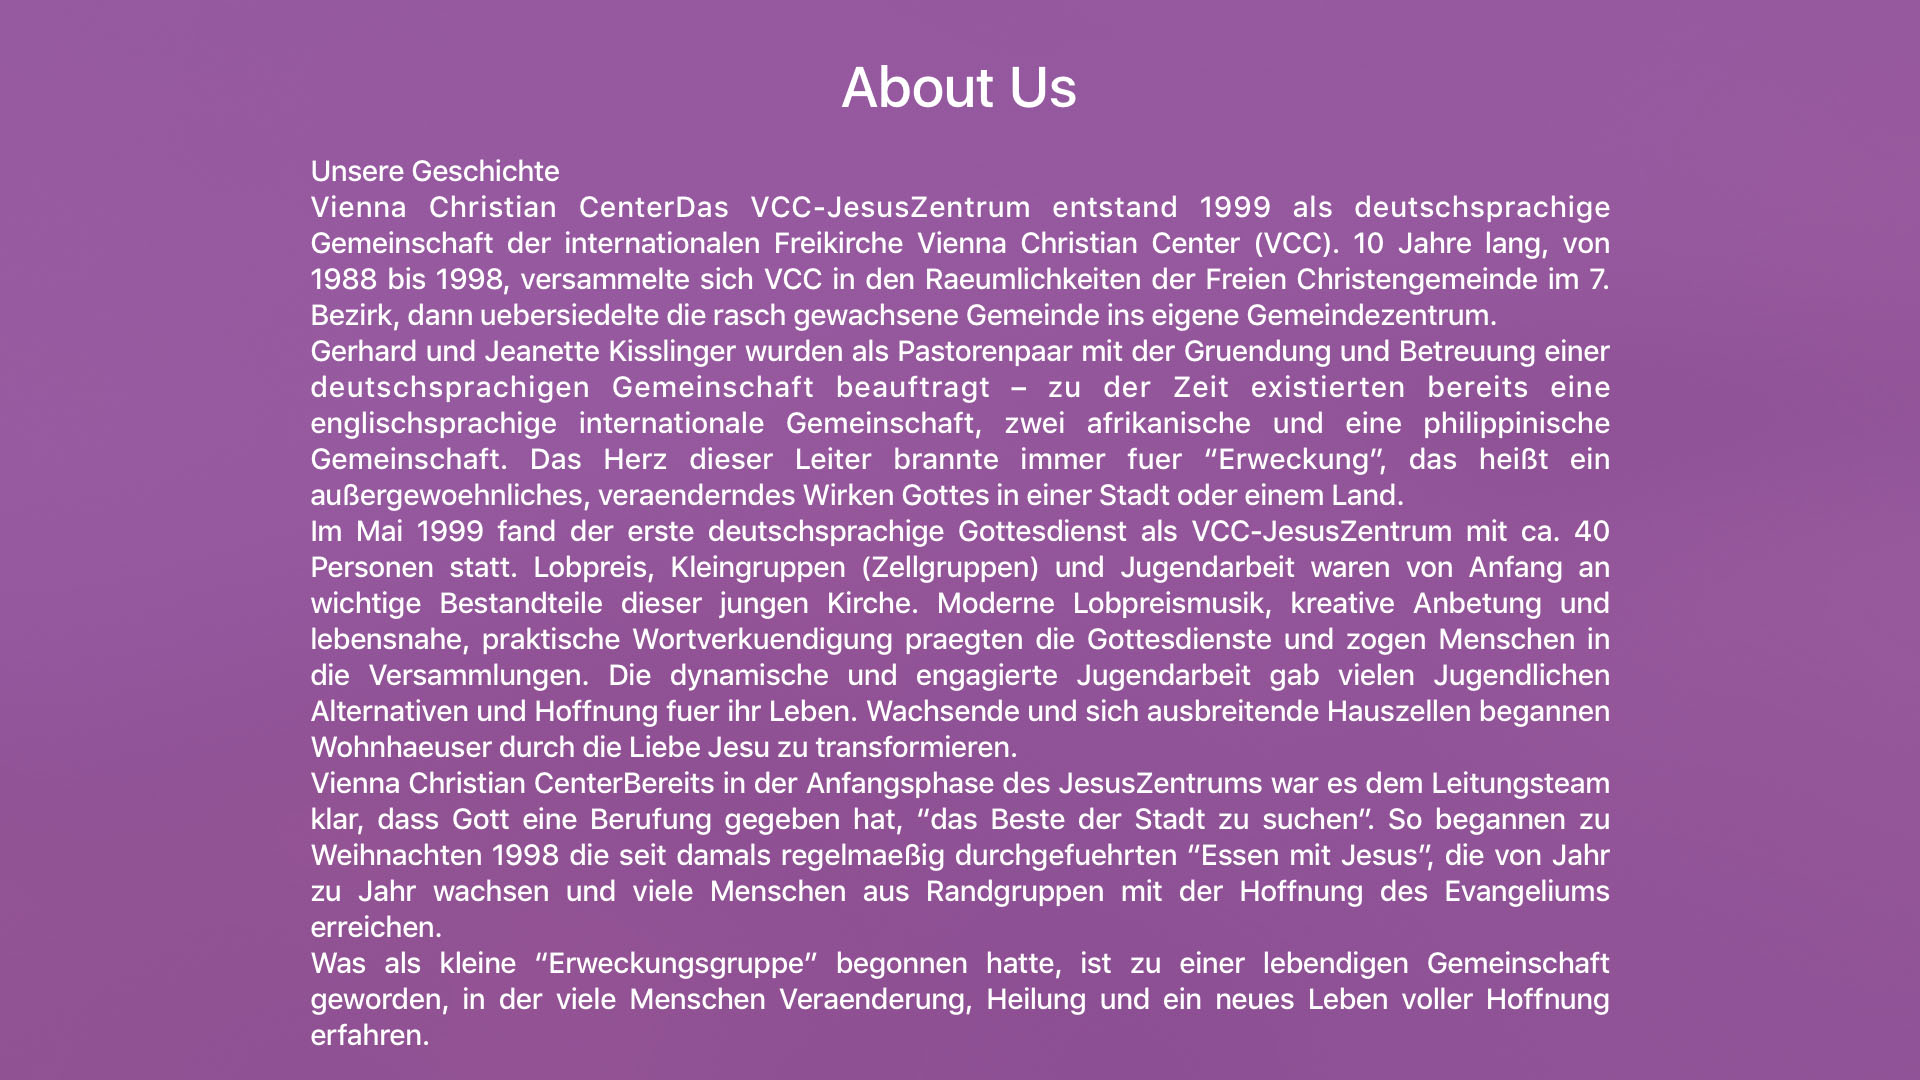 VCC JesusZentrum Screenshot 003